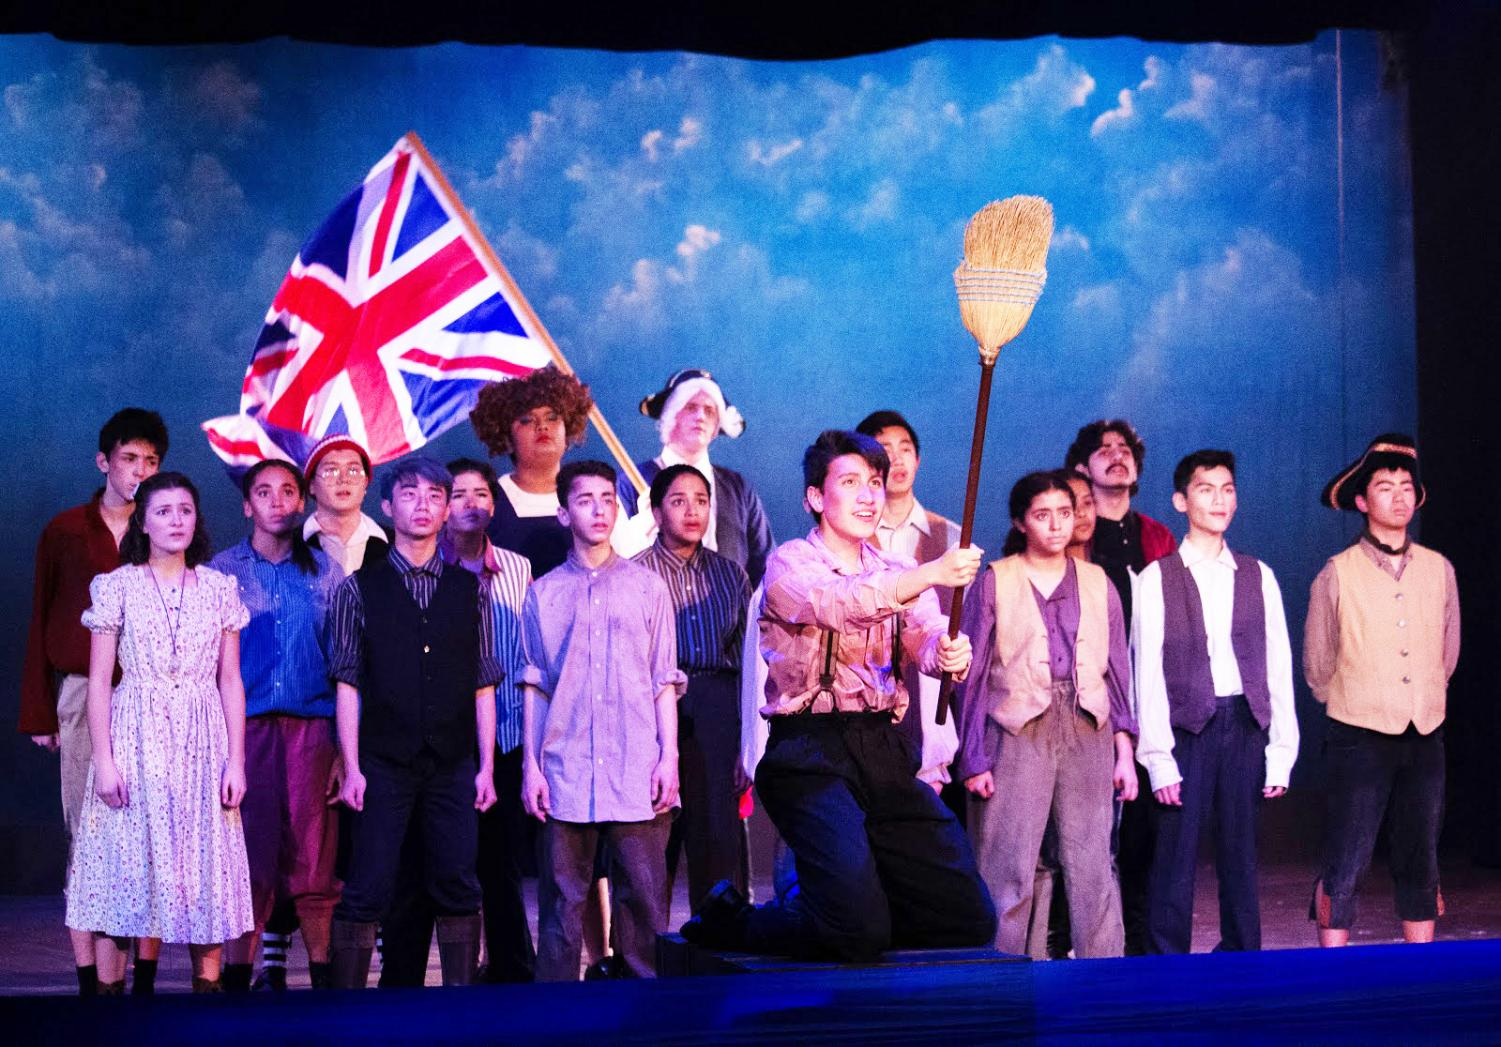 Peter and the Starcatcher had several musical numbers, a unique ad- dition that makes it different from other plays that ICT has produced.